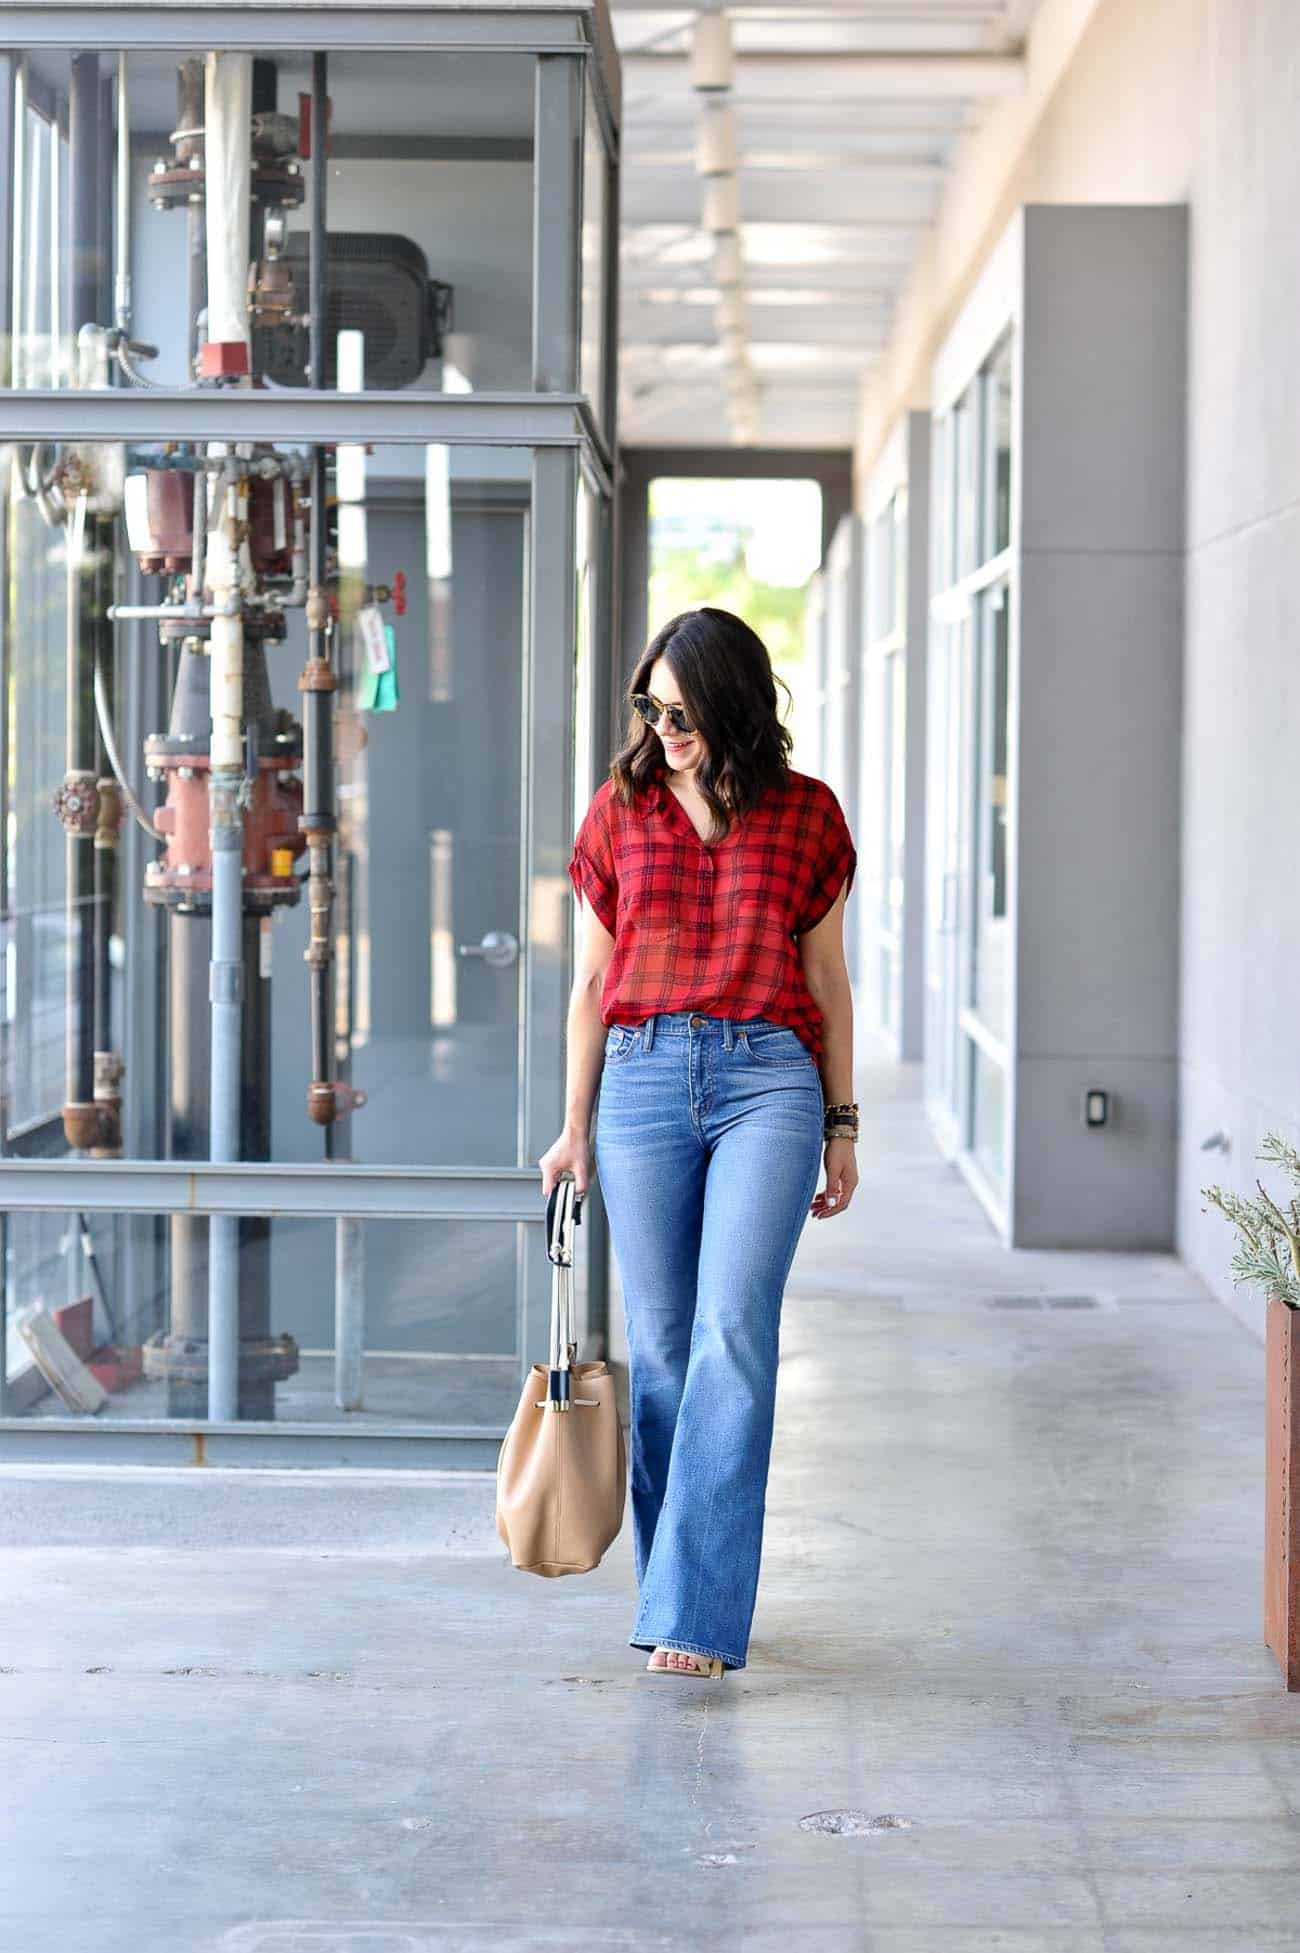 fall outfits, how to style wide leg jeans, casual fall outfit ideas - My Style Vita @mystylevita